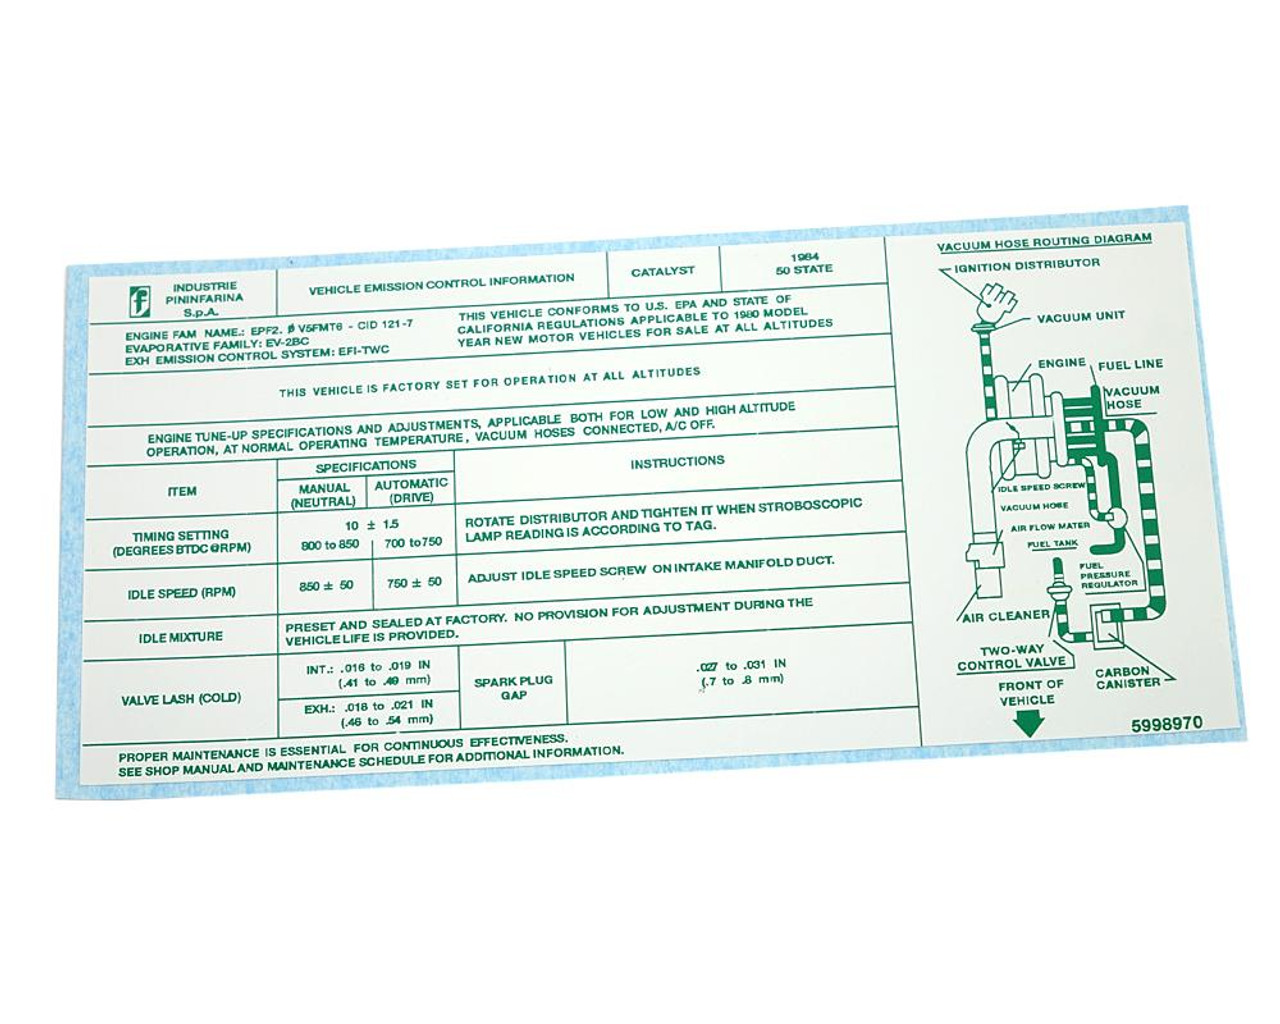 Vehicle Emission Control Information Decal - 1984